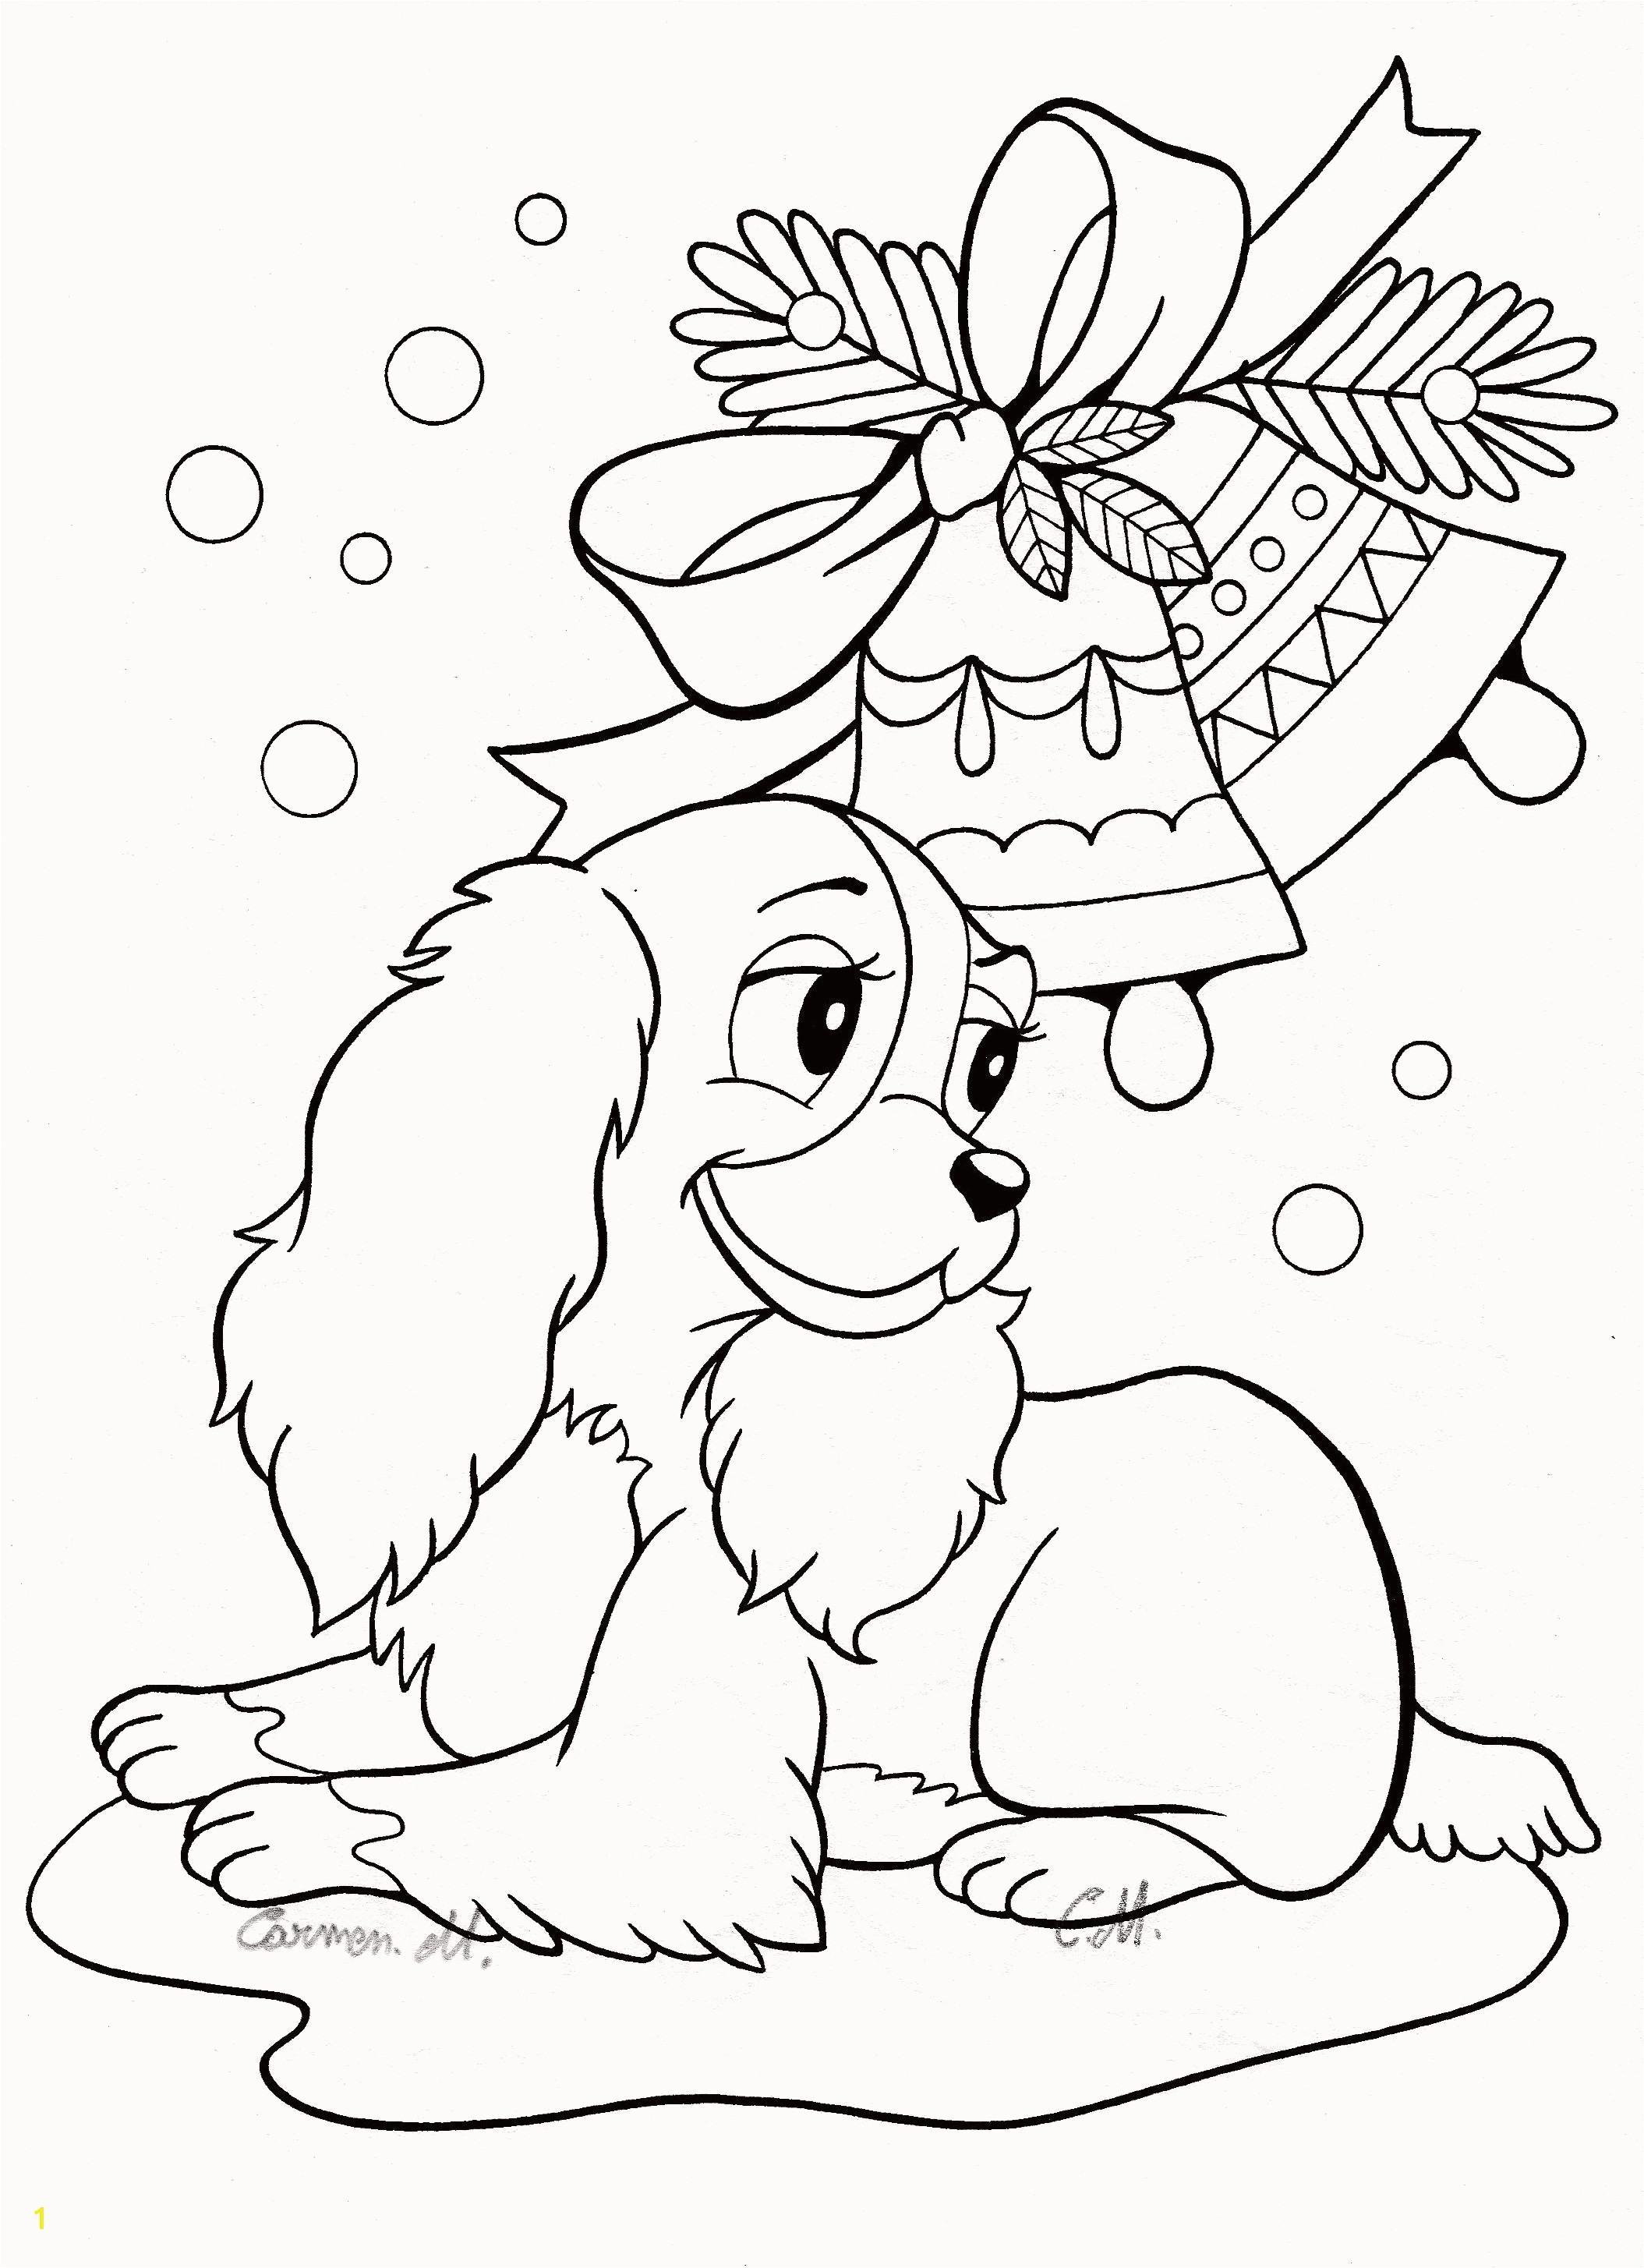 Free Coloring Pages for Groundhog Day New Groundhog Day Worksheets for Elementary Best Printable Od Dog